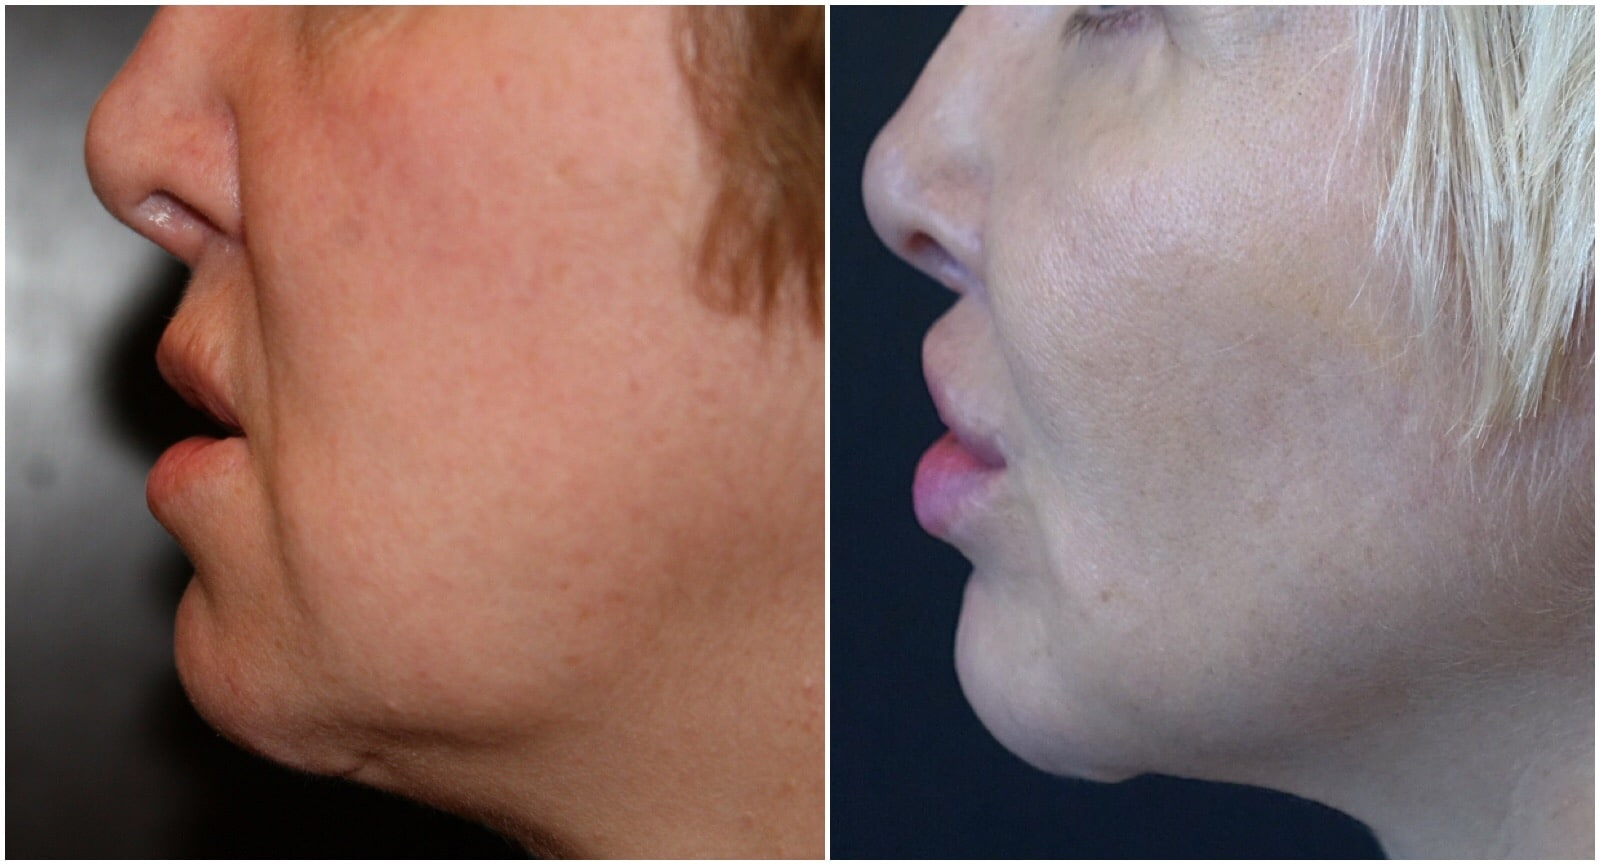 After combination micro liposculpture and fat transfer. Note the smoother jawline and submental (chin) region all performed with delicate no scar facial surgery without a face or neck lift.